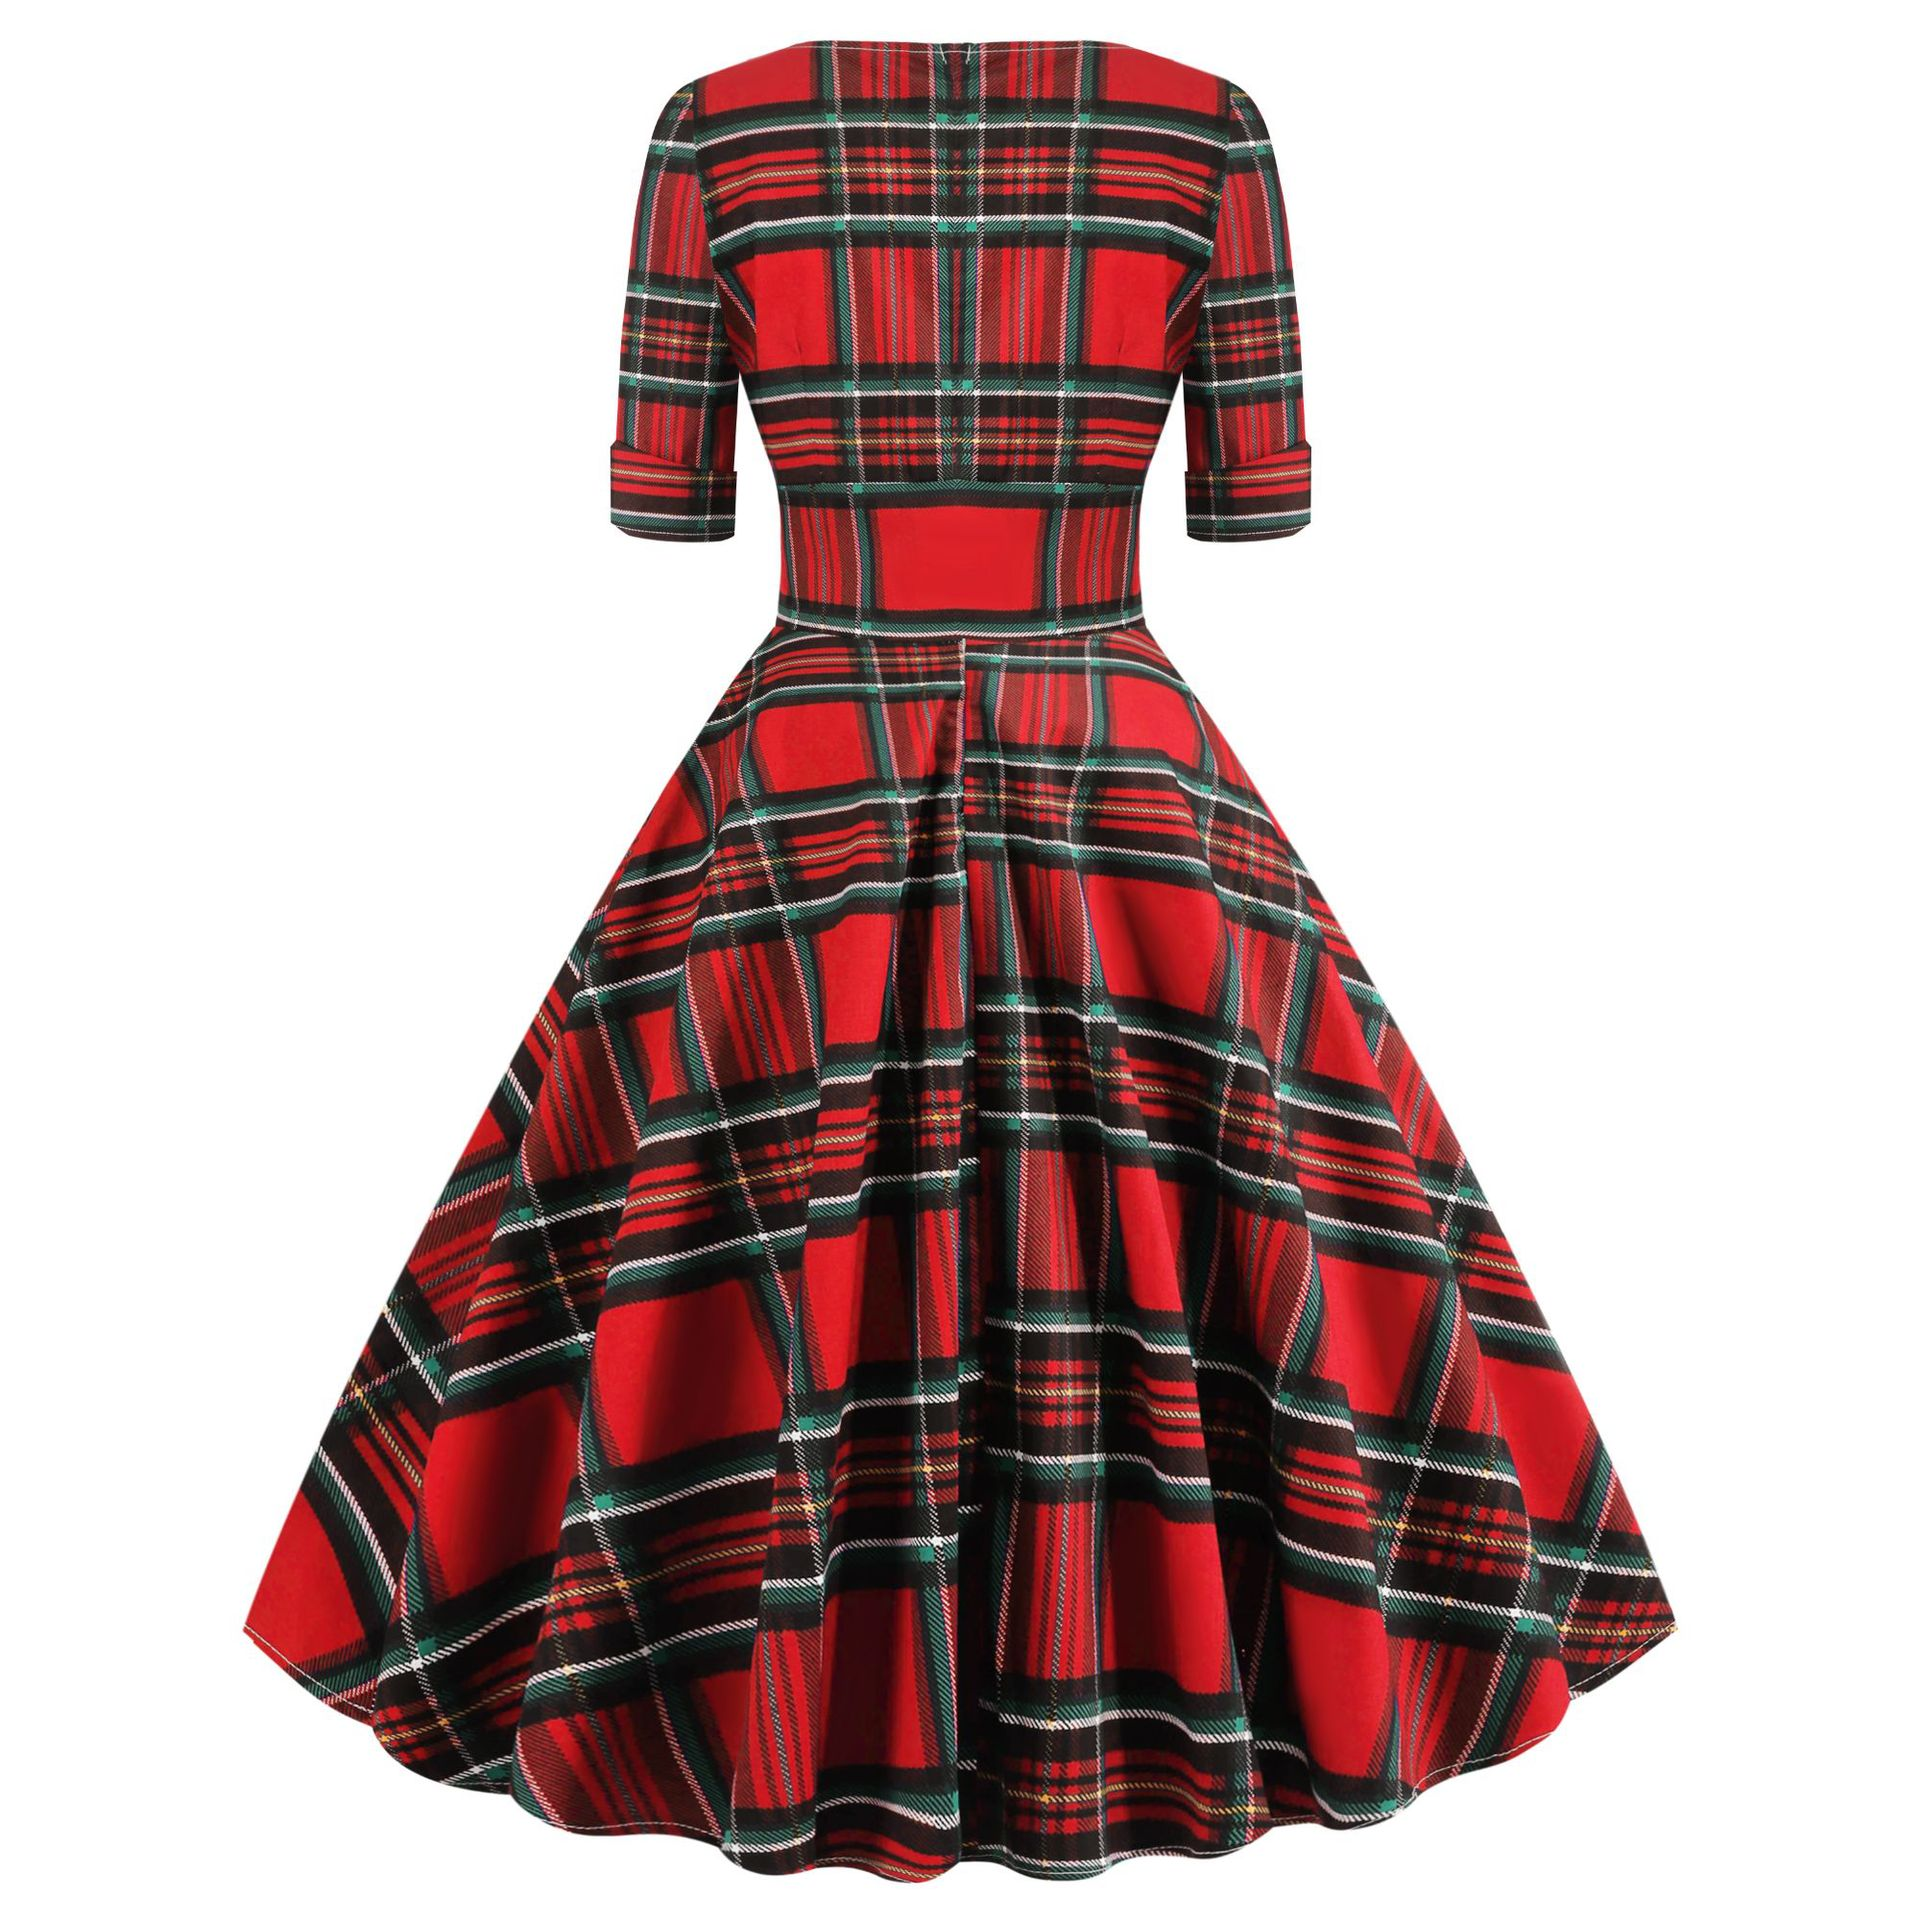 Women Summer Dresses Checkered Plaid Retro Vintage 50s 60s Robe Rockabilly Swing Pinup Office Dress Dot Casual Party Vestidos Buy At The Price Of 14 88 In Aliexpress Com Imall Com